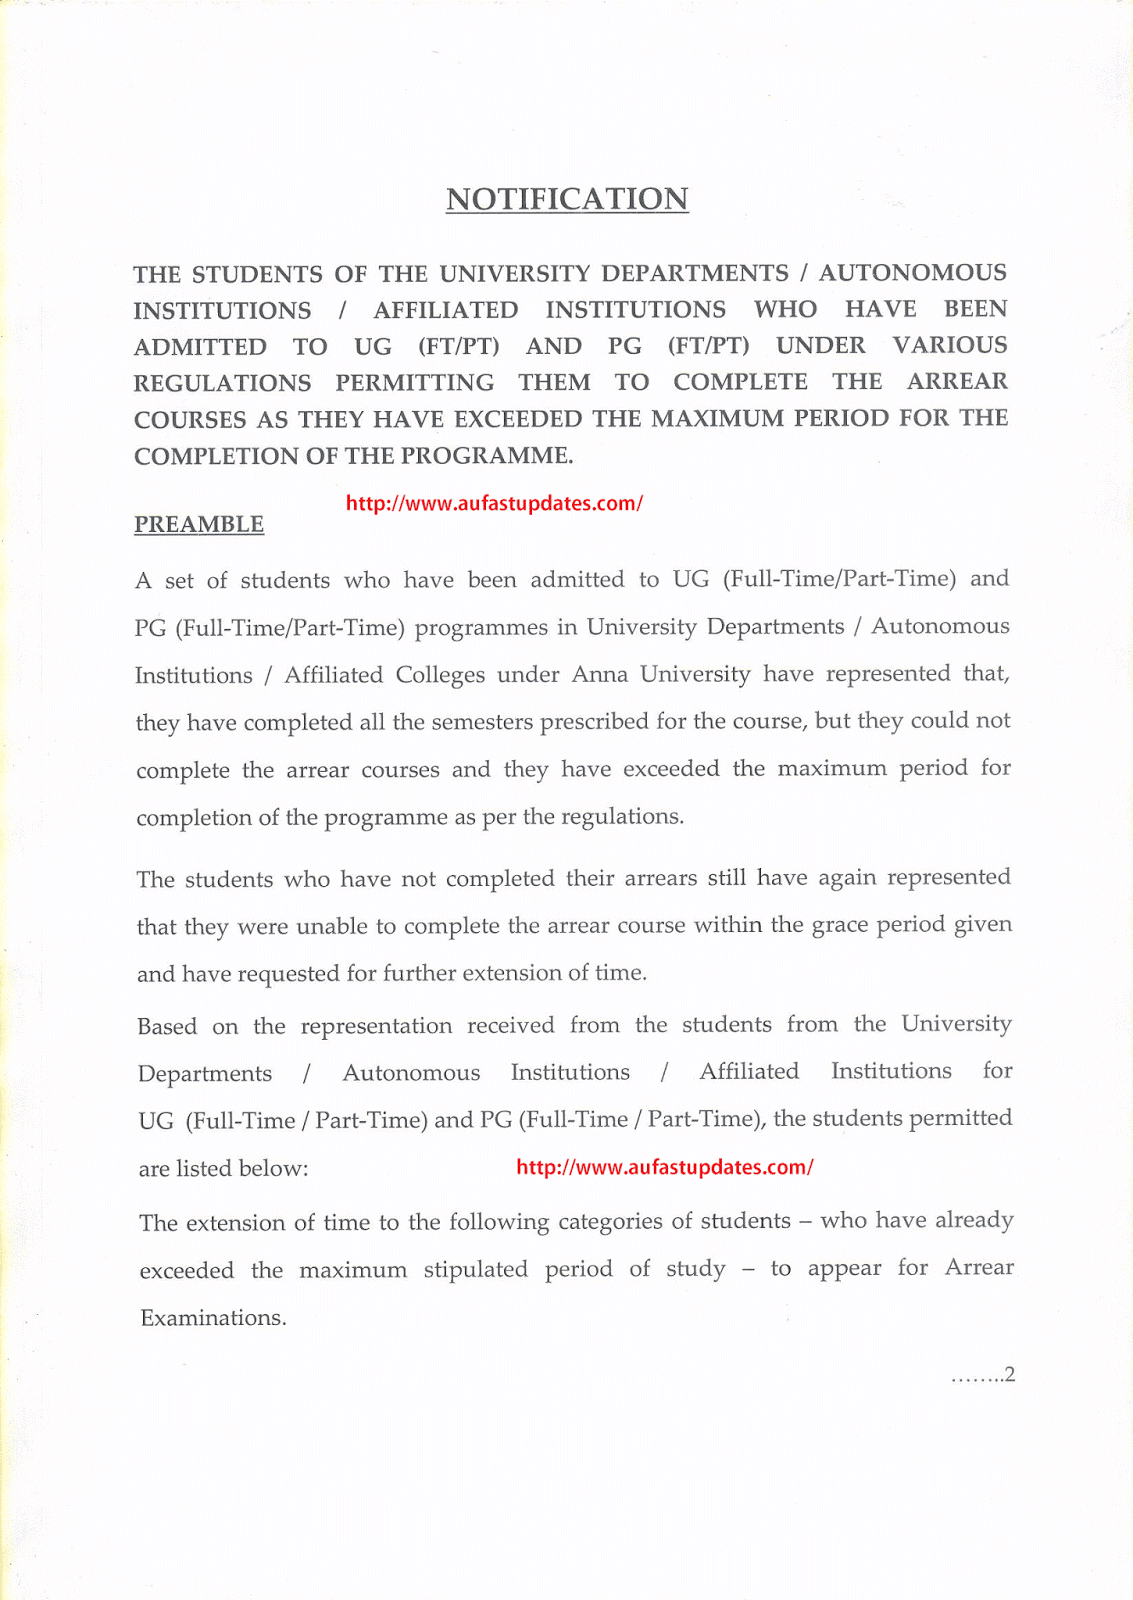 Notification - Permitting Students to Complete the Arrear Courses those who have Exceeded the Maximum Period for the Completion of the Programme - Reg.